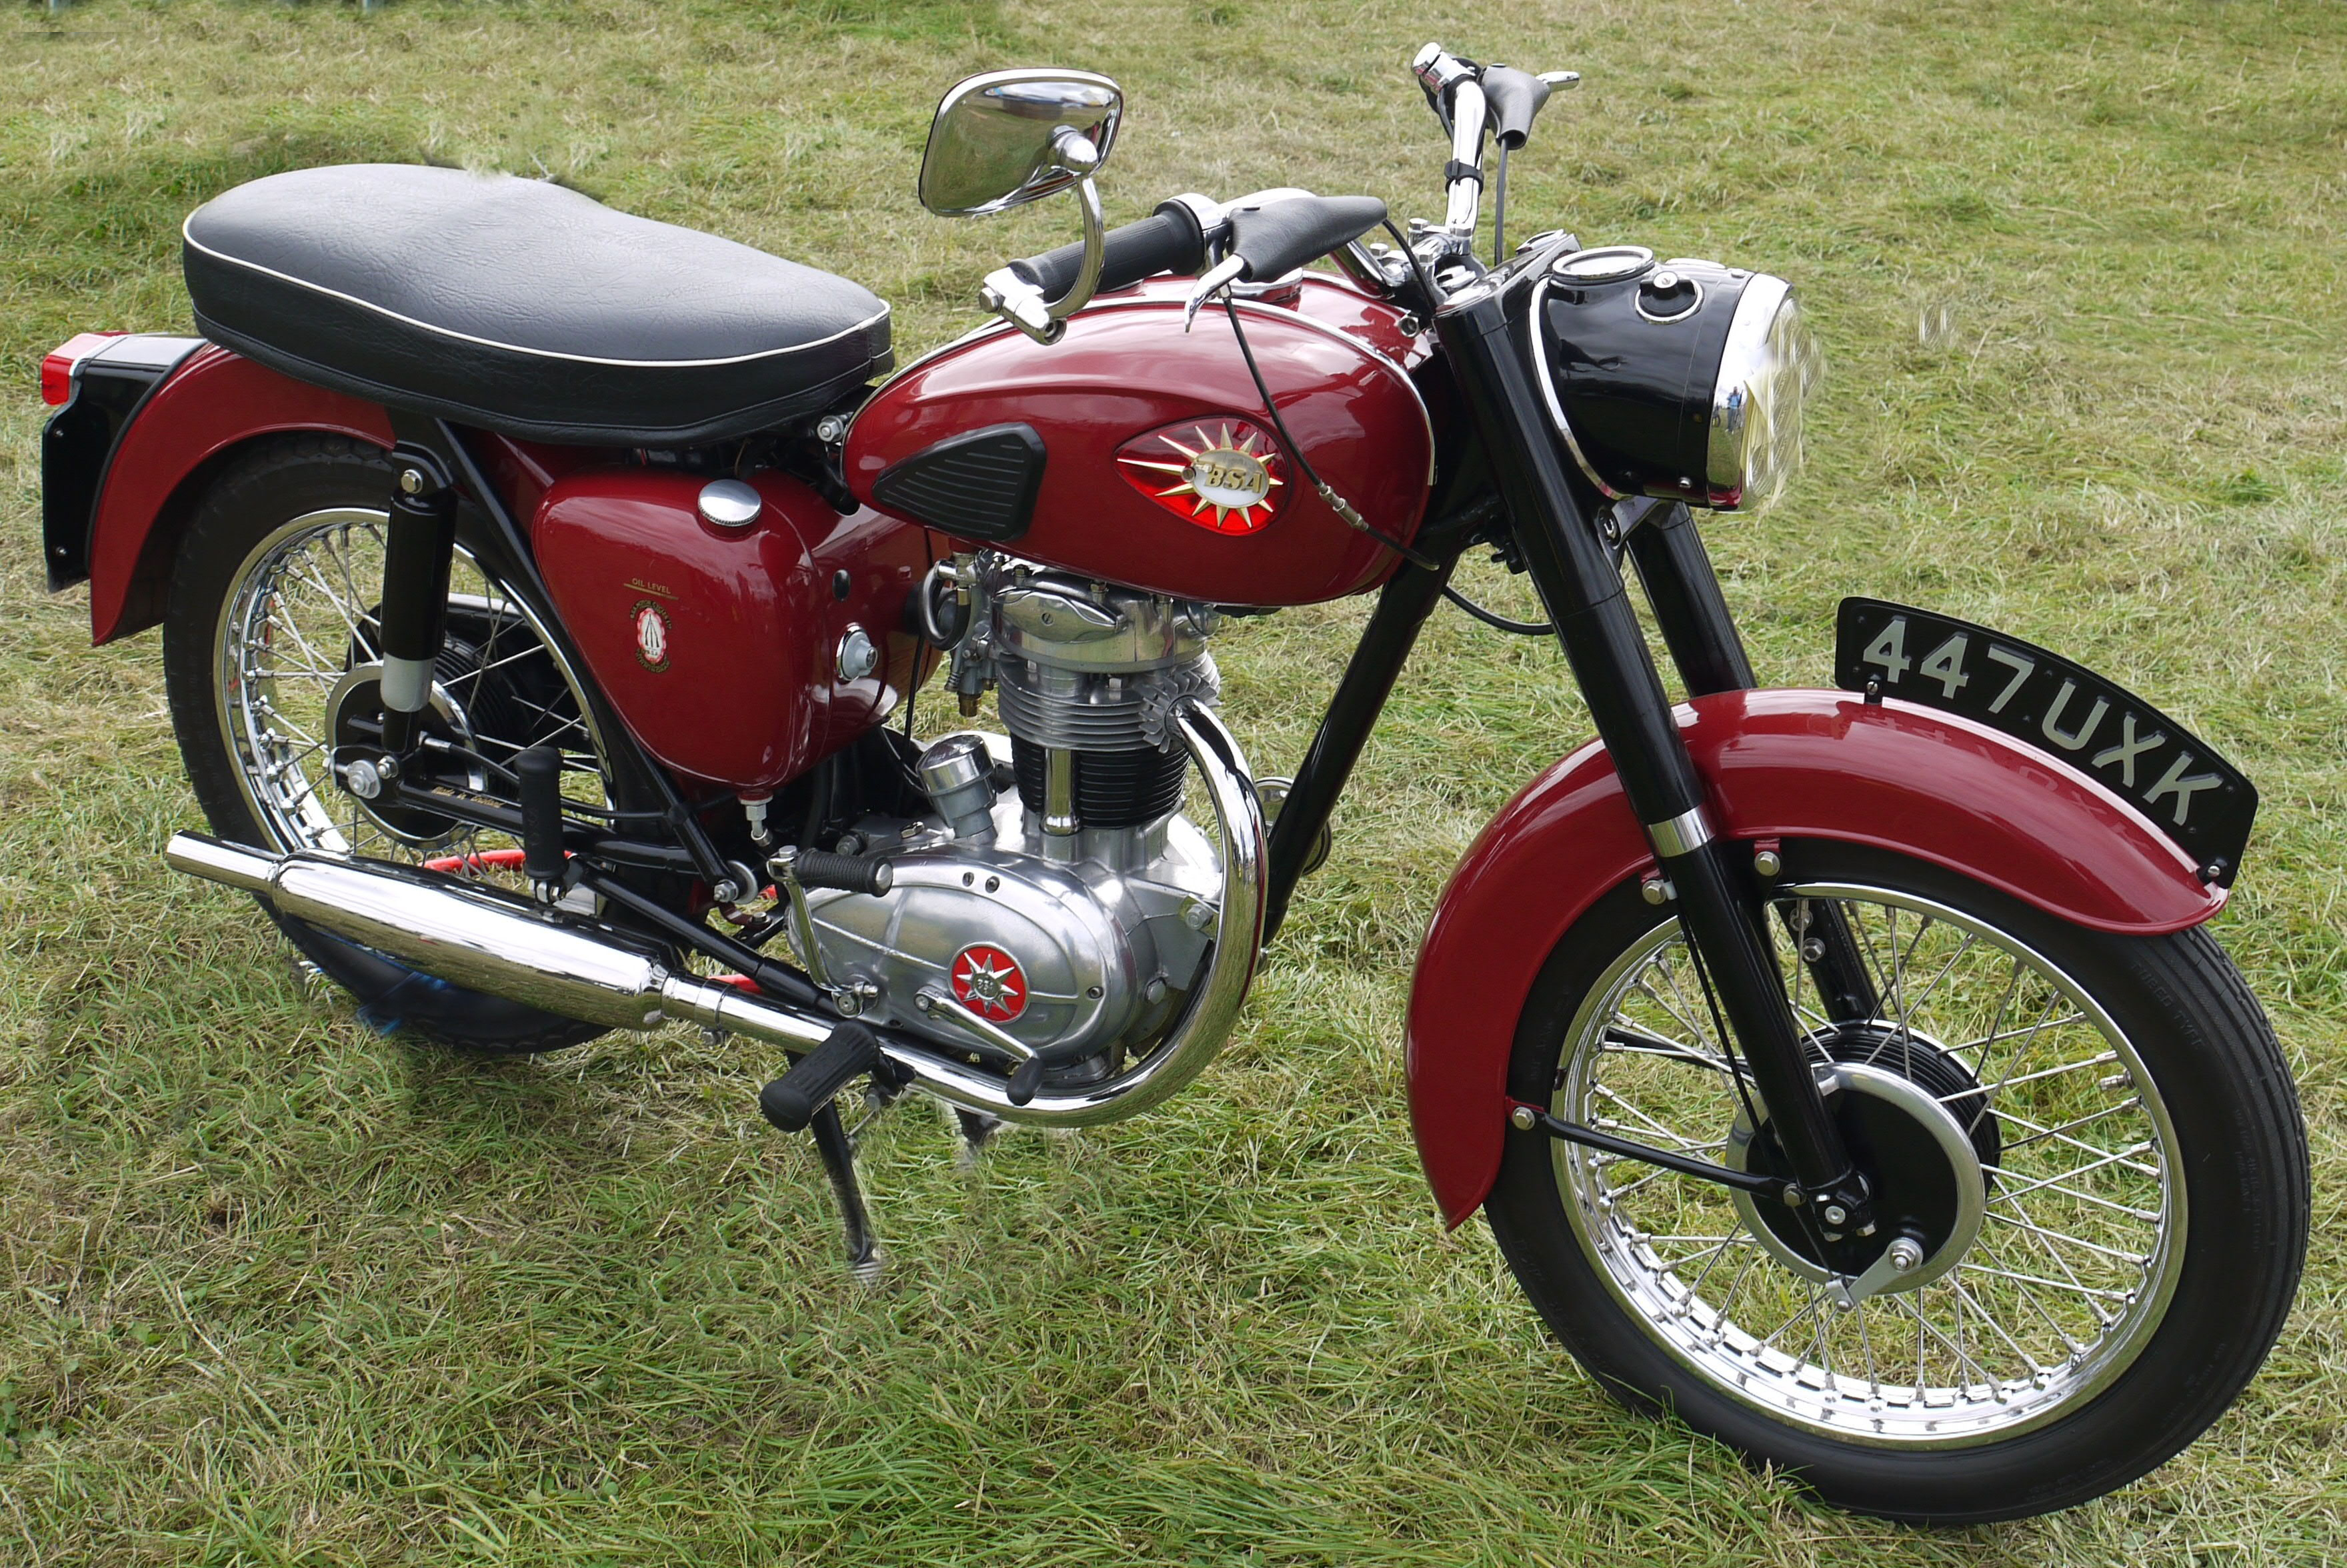 BSA C15 250cc 1960 - Flickr - mick - Lumix(1).jpg